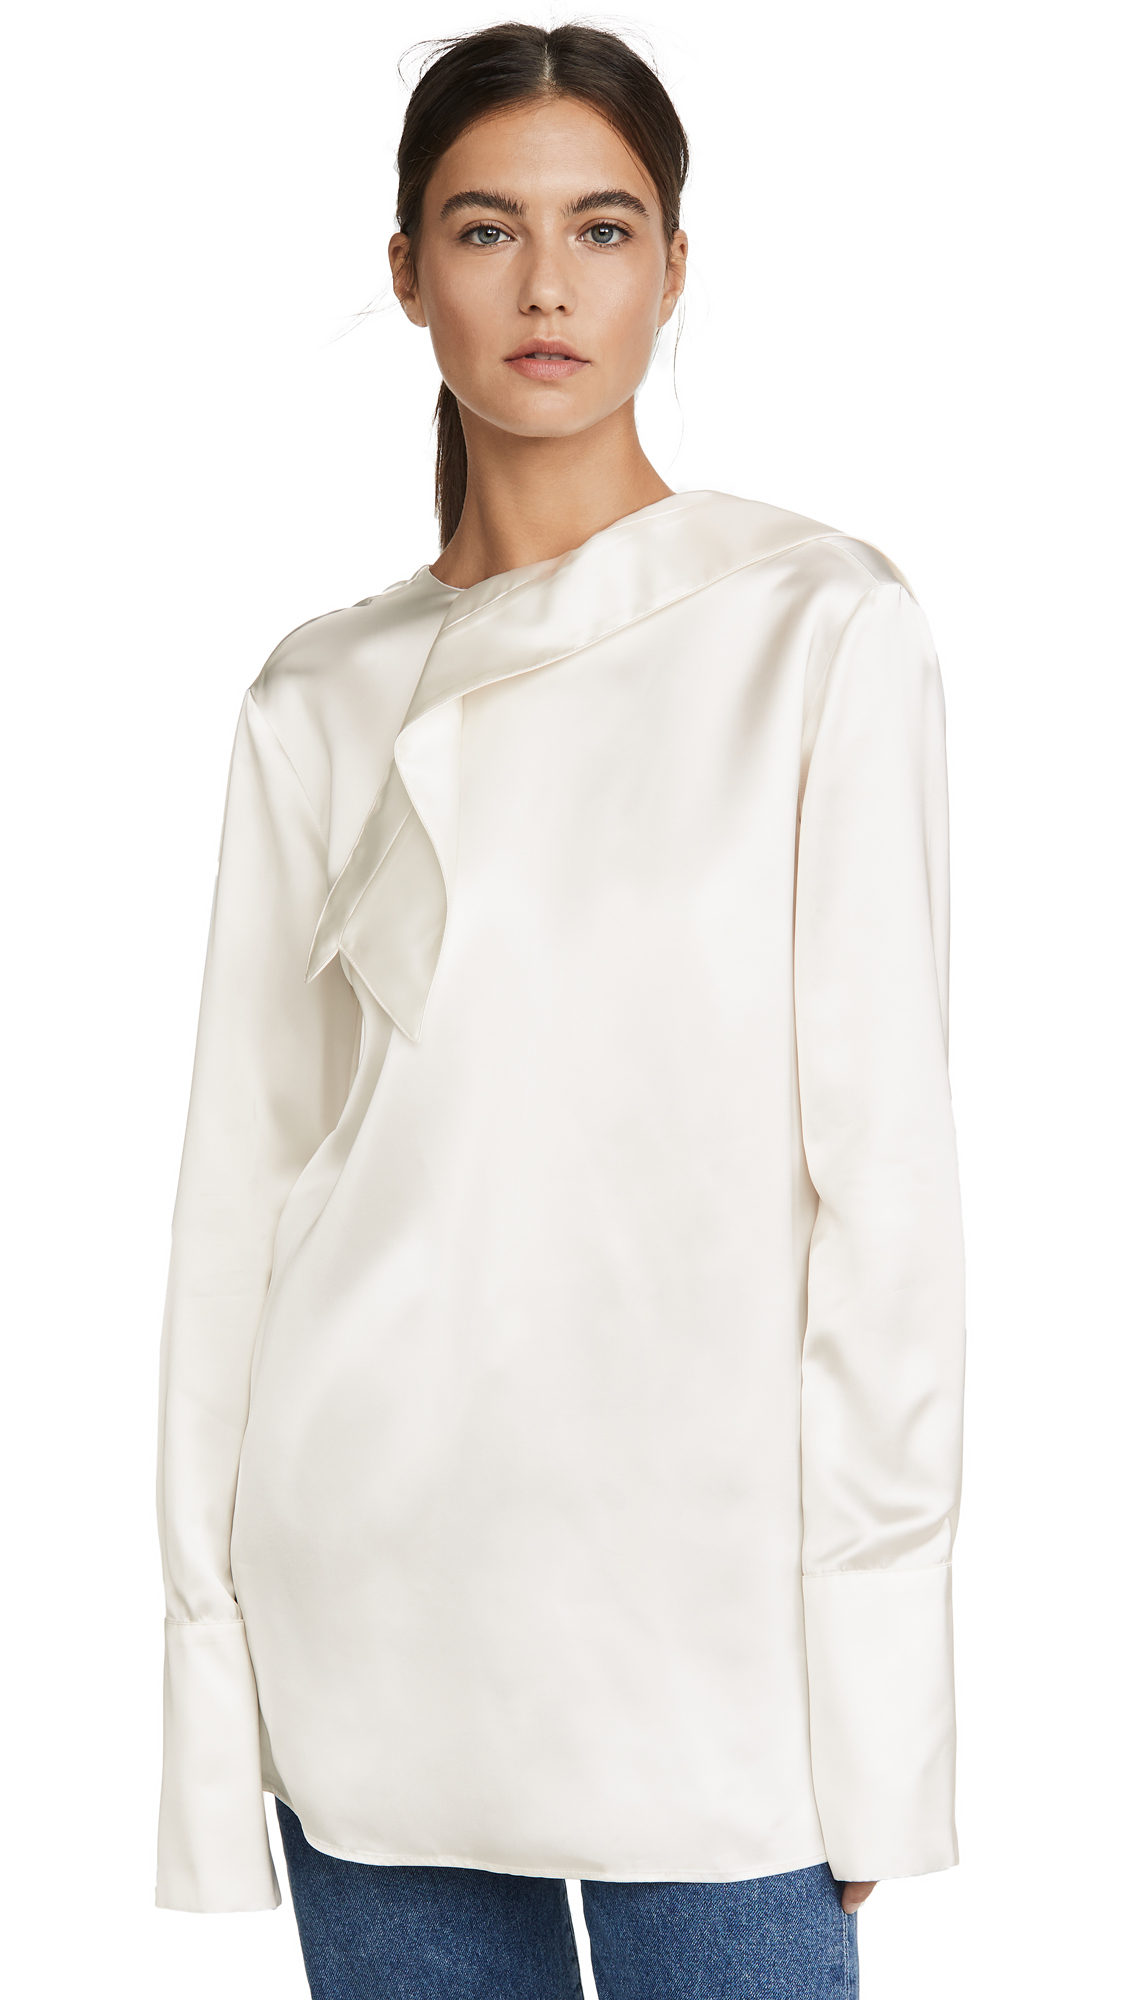 Marni Collar Neck Blouse - 50% Off Sale